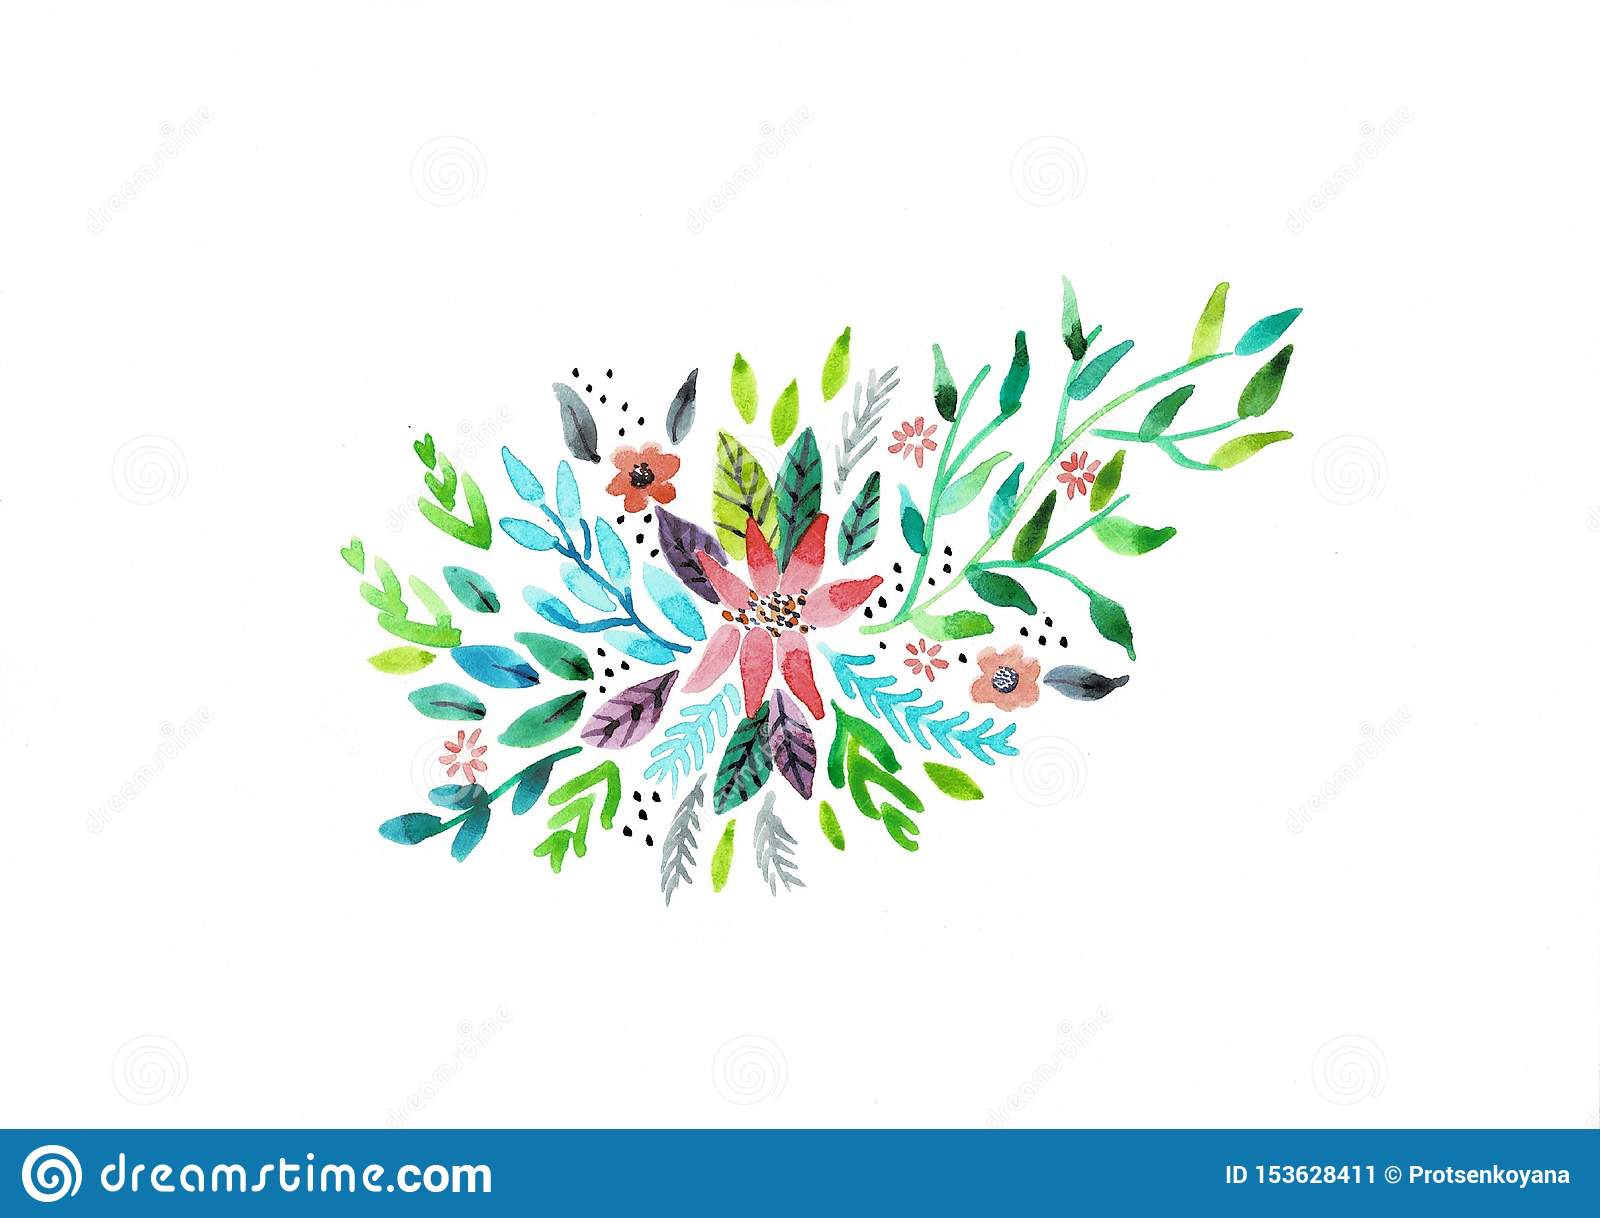 Decorative watercolor flowers. floral illustration, Leaf and buds. Botanic composition for wedding or greeting card